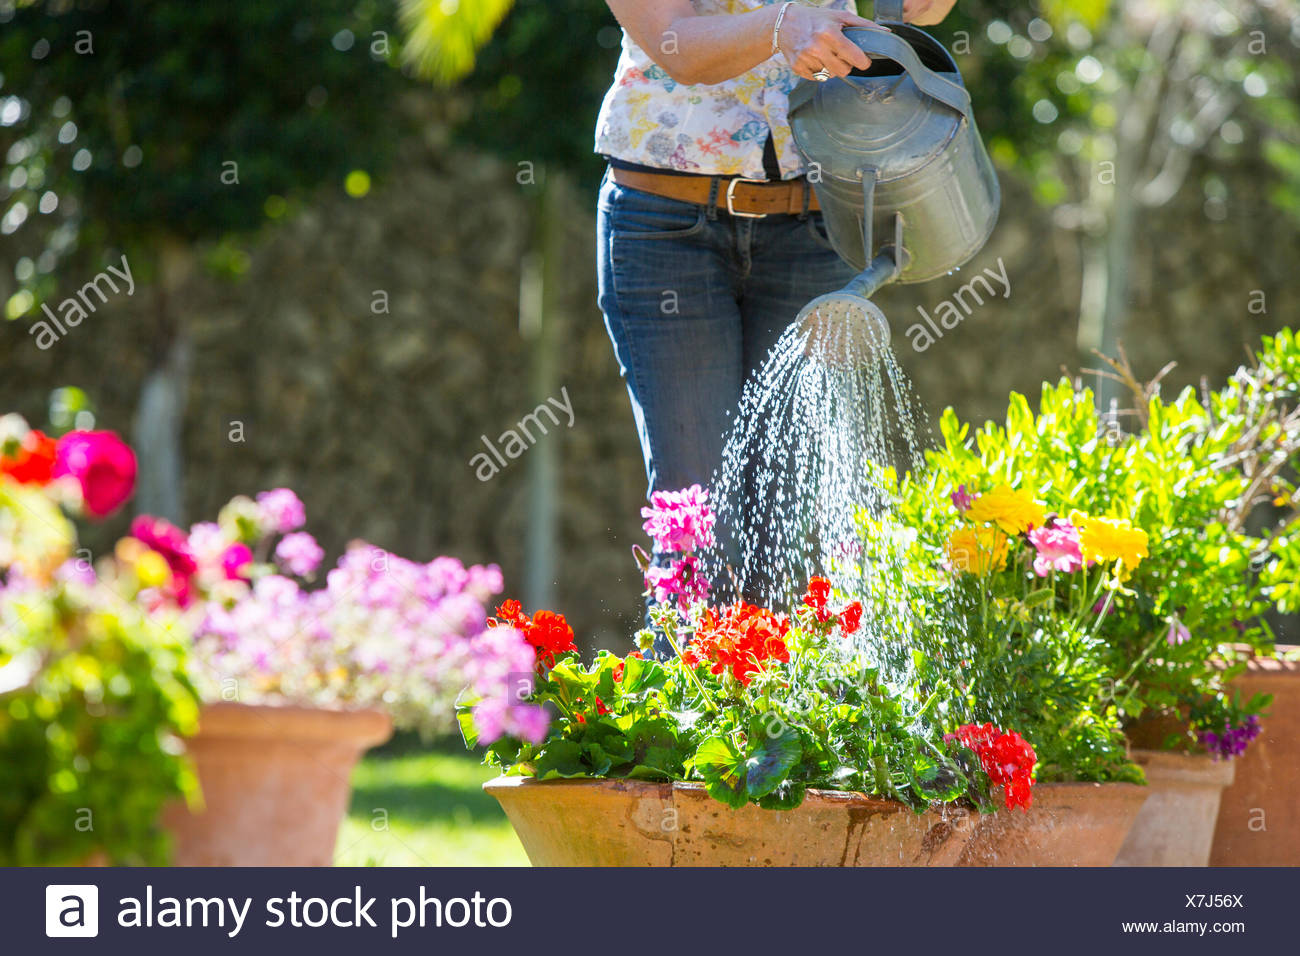 Cropped view of woman watering flower pots in garden - Stock Image